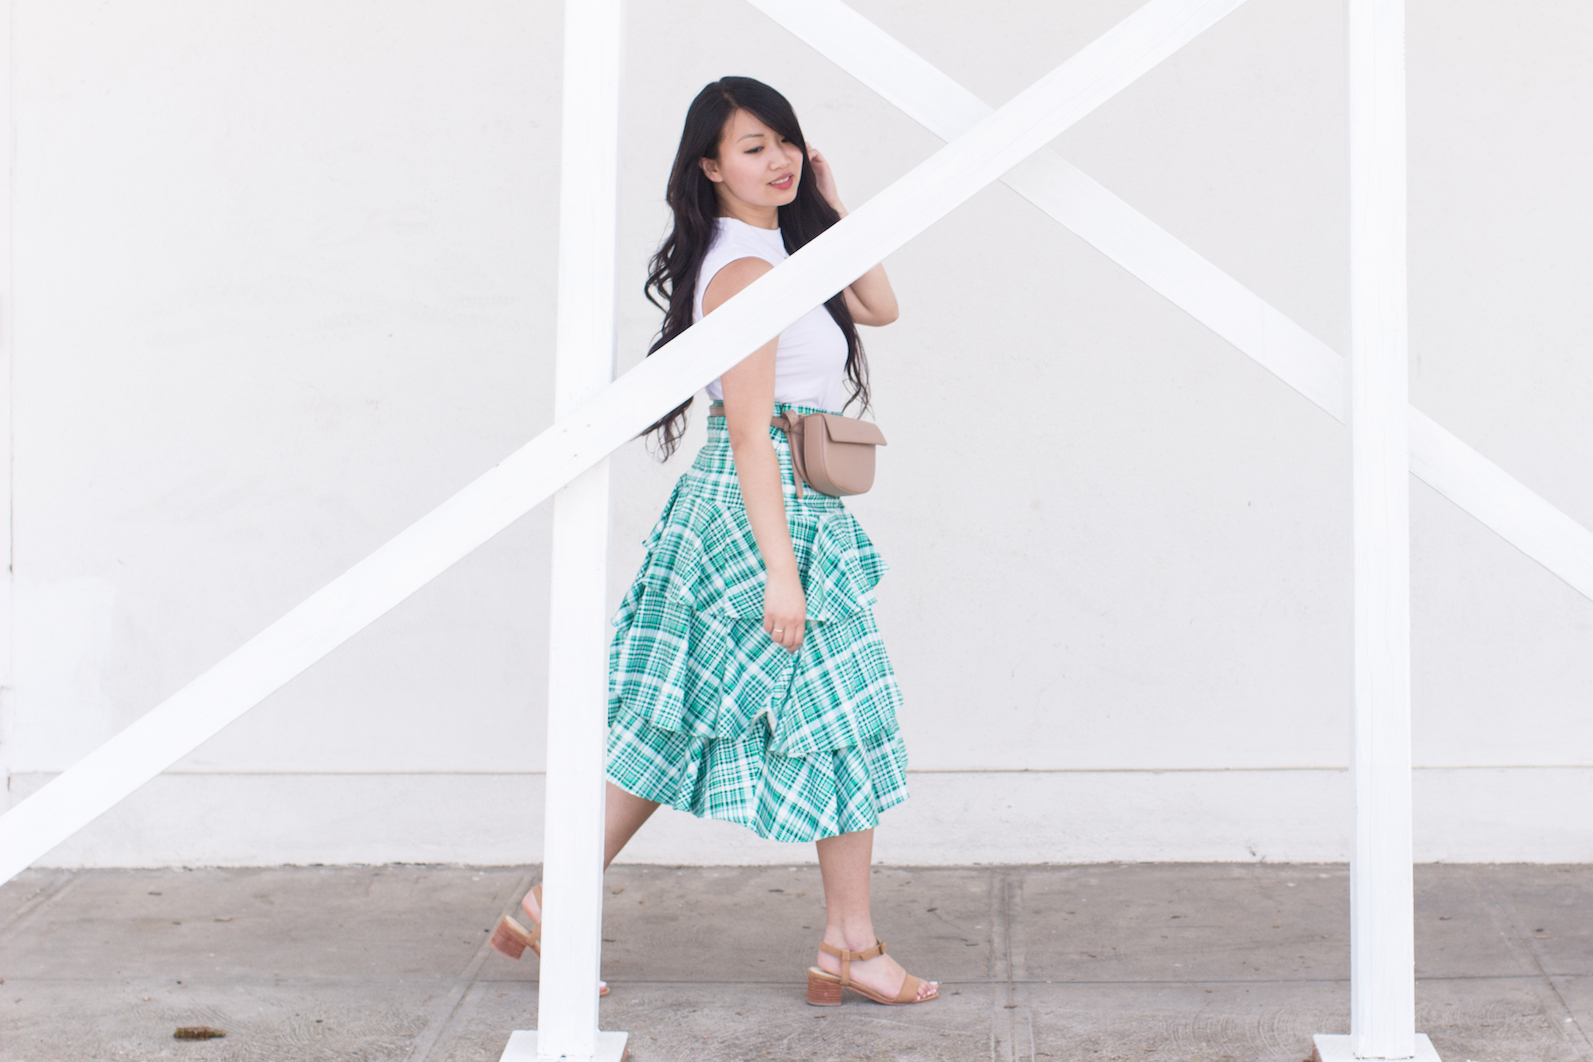 Amur Skirt Nisolo Block Heel // Week Of Outfits With Diana Youn On The Good Trade